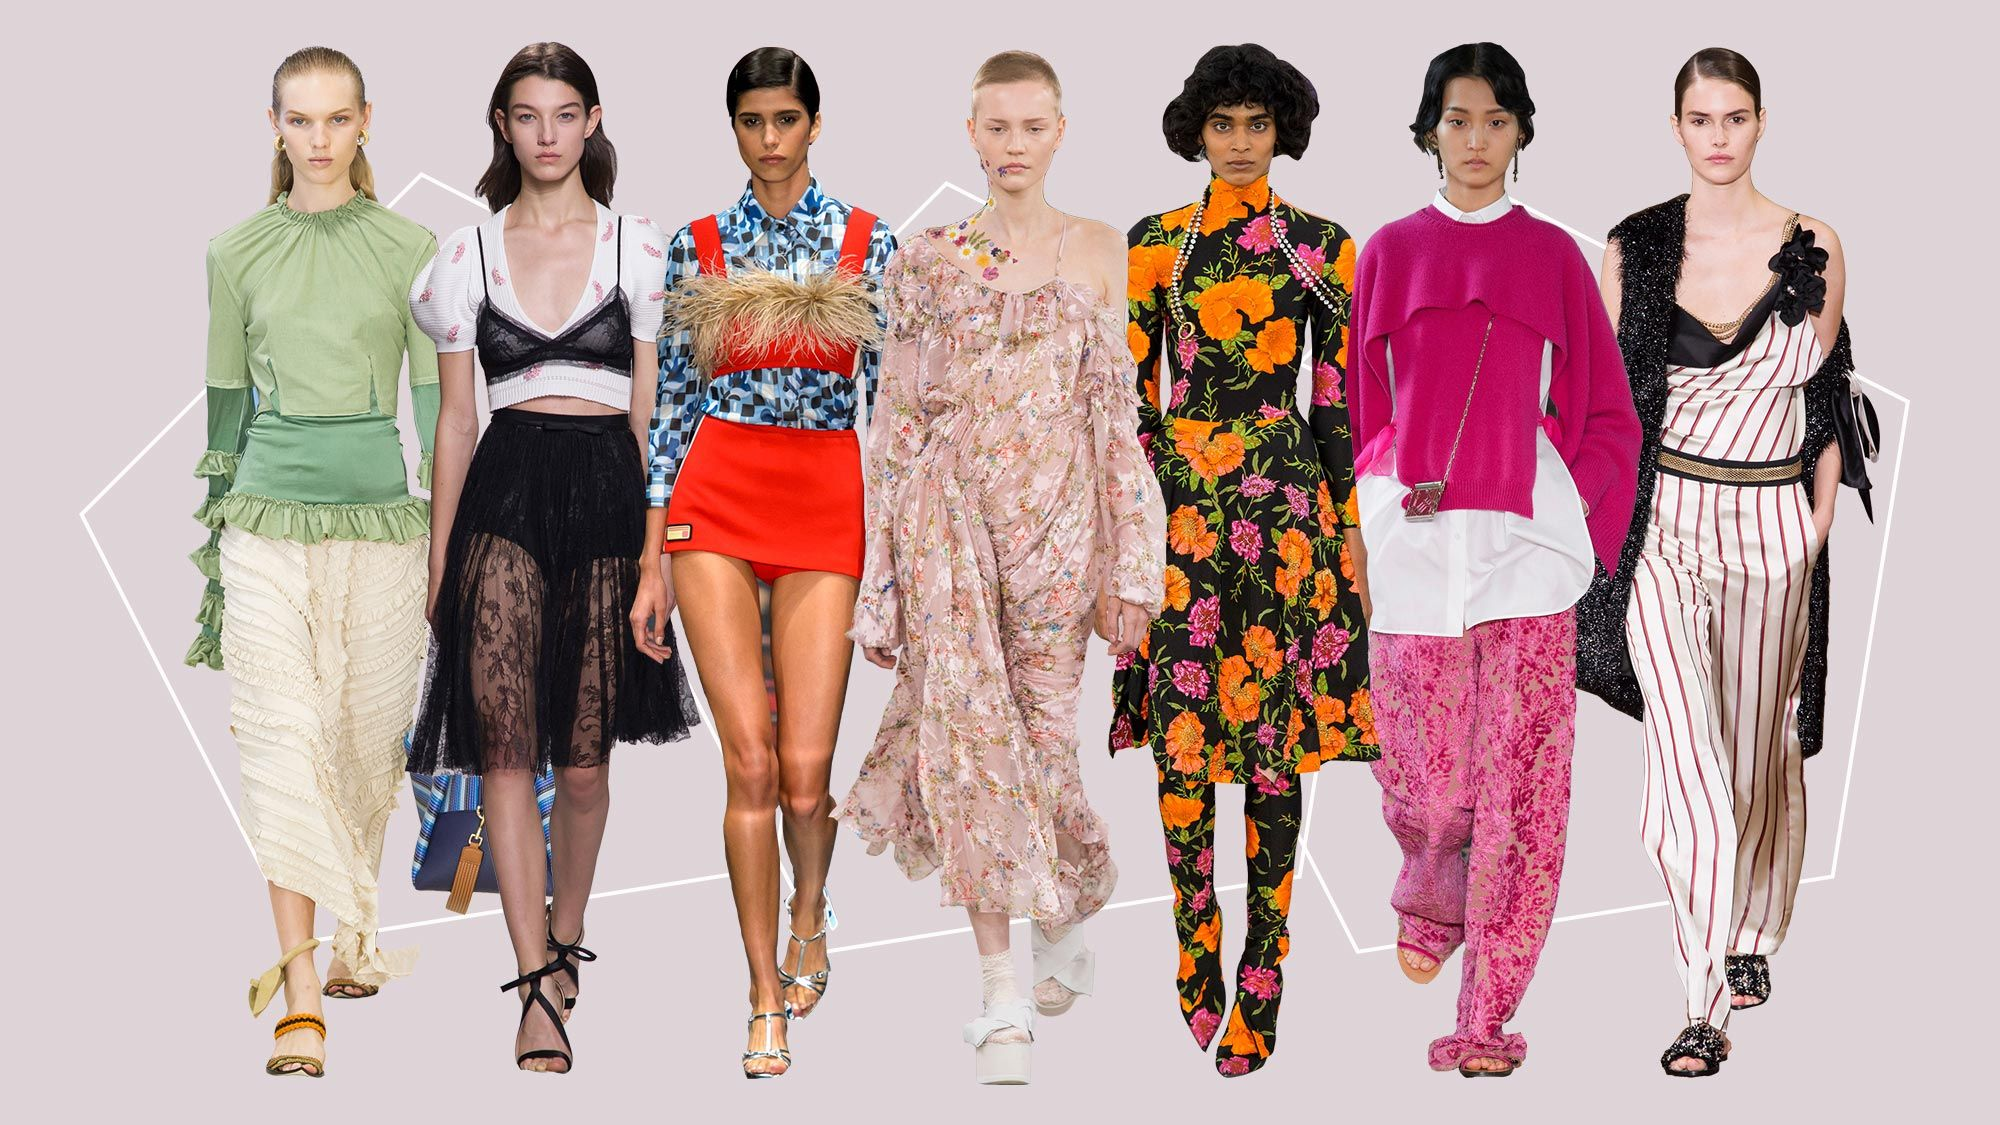 SS17 Fashion Trend Report: The Best Women's Fashion Trends ...